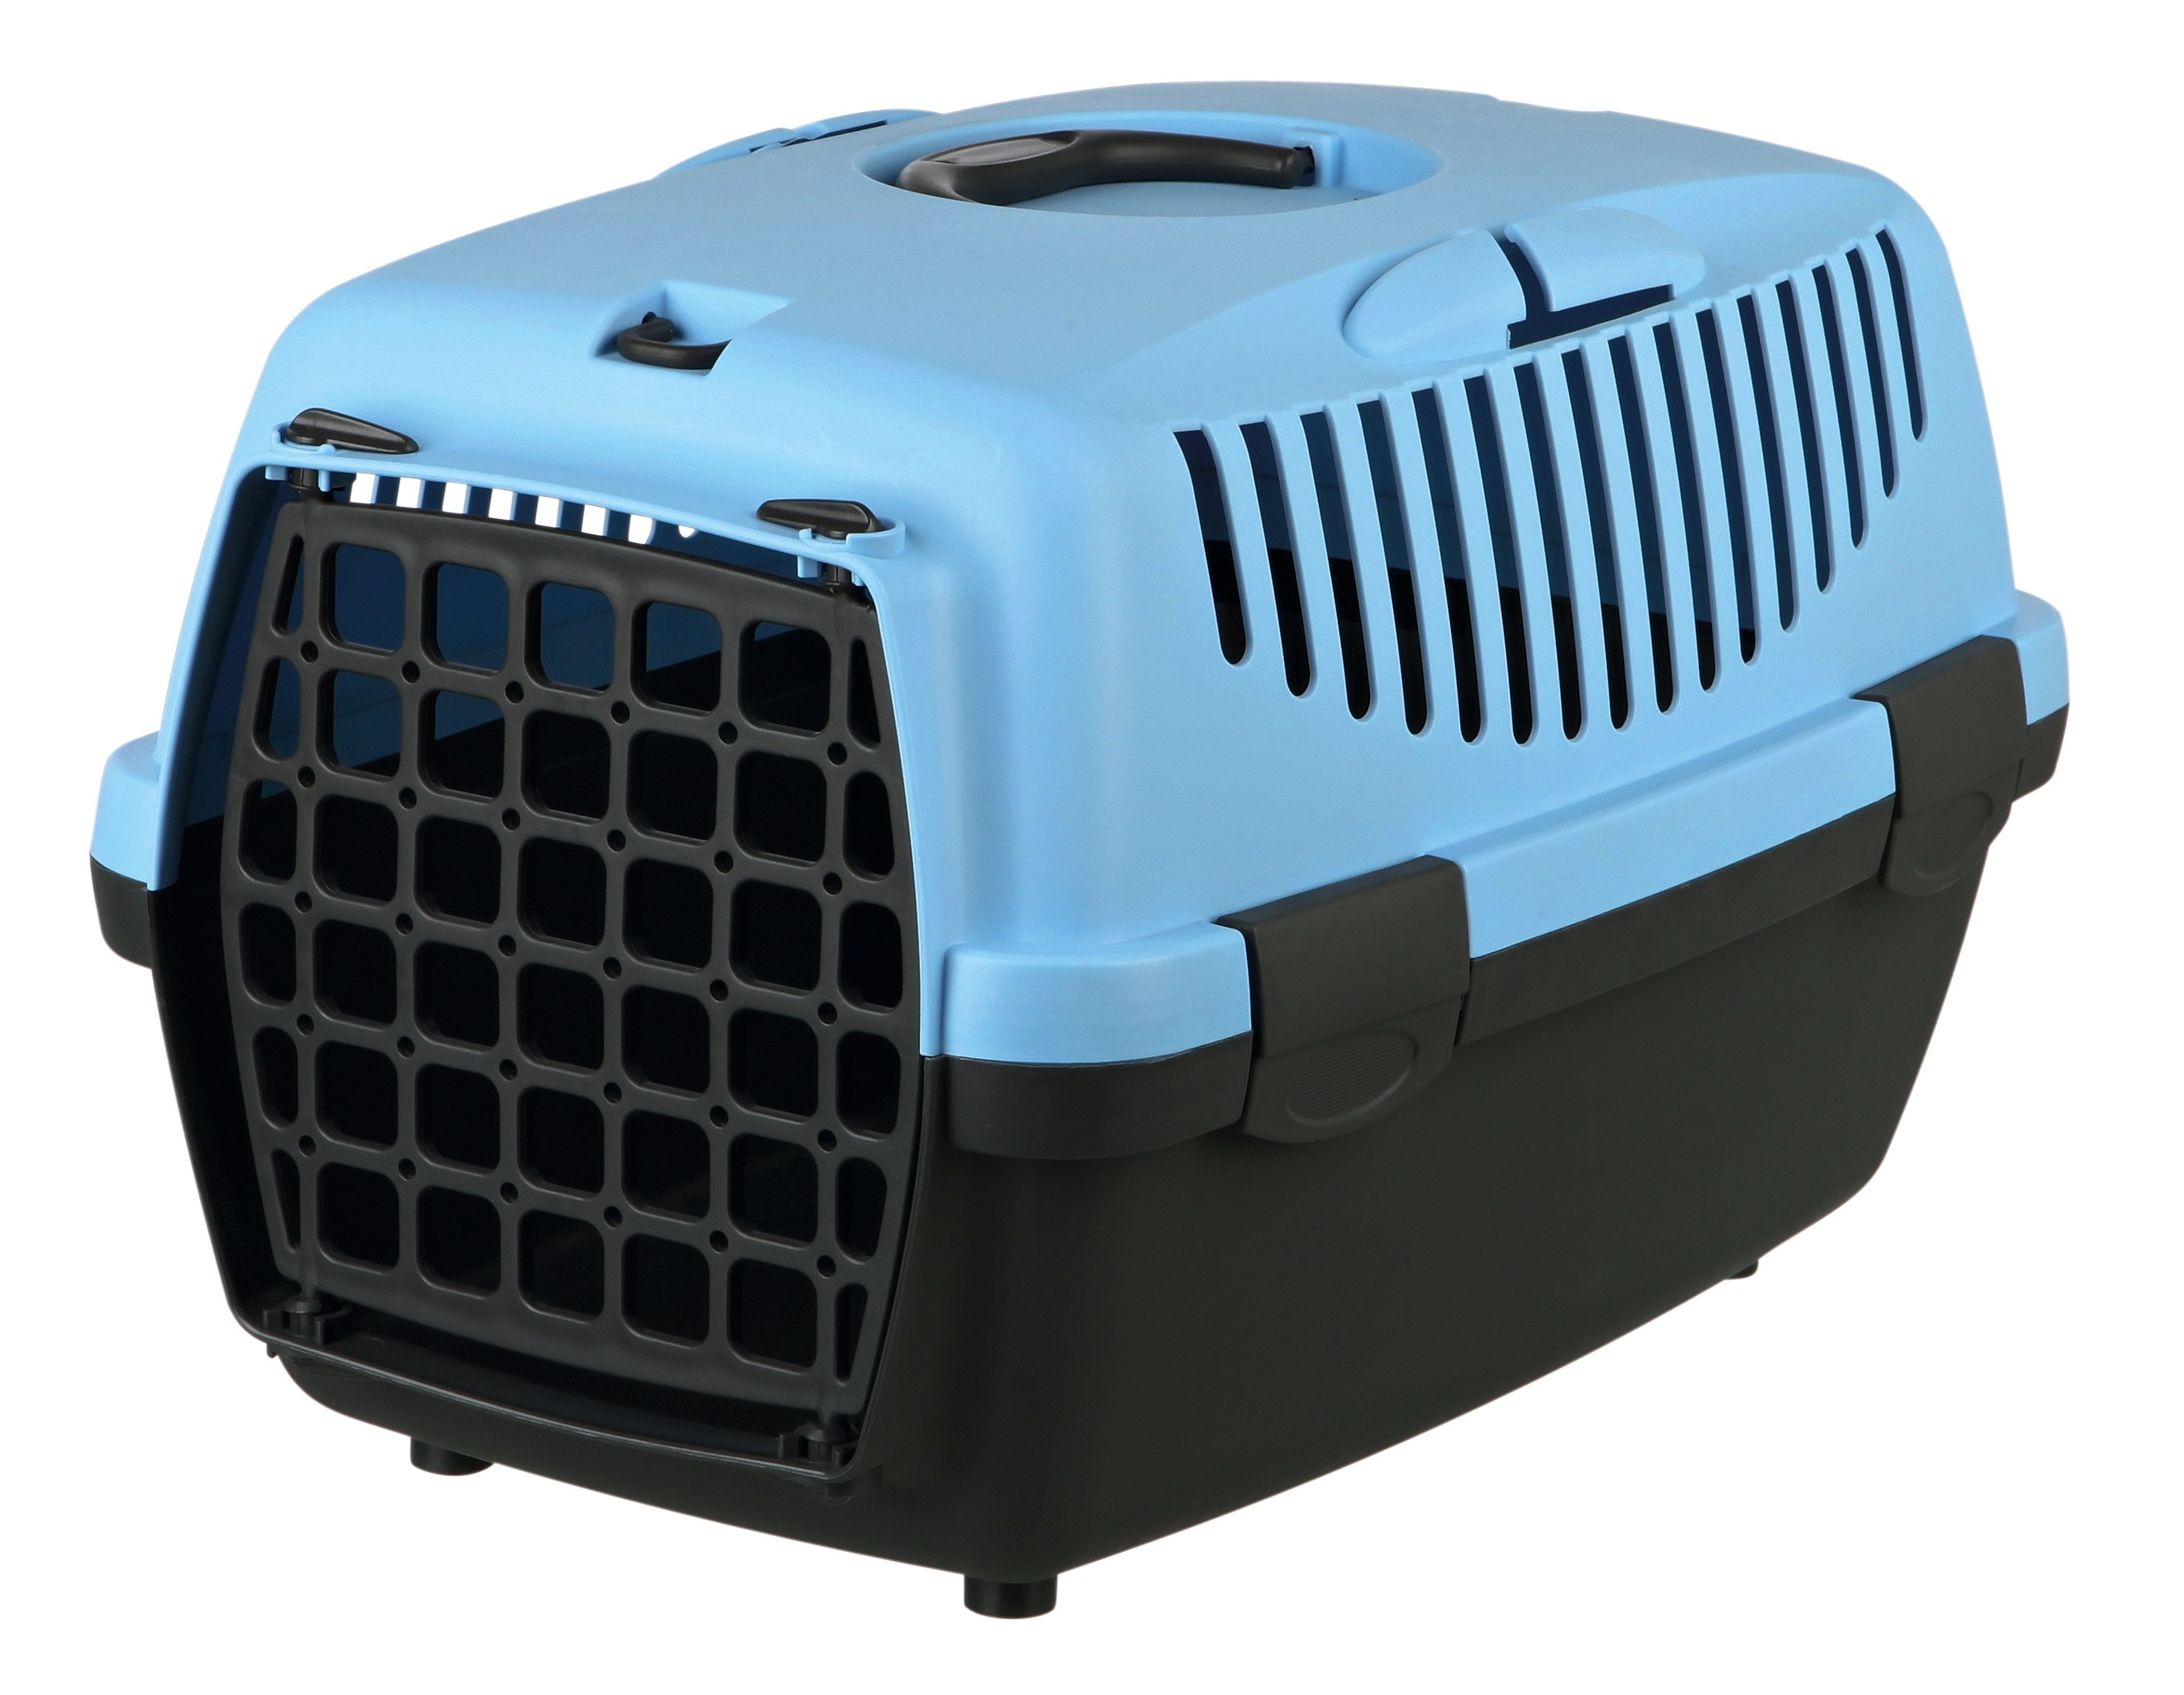 Capri 1 Transport Box XS - Light Blue/Black